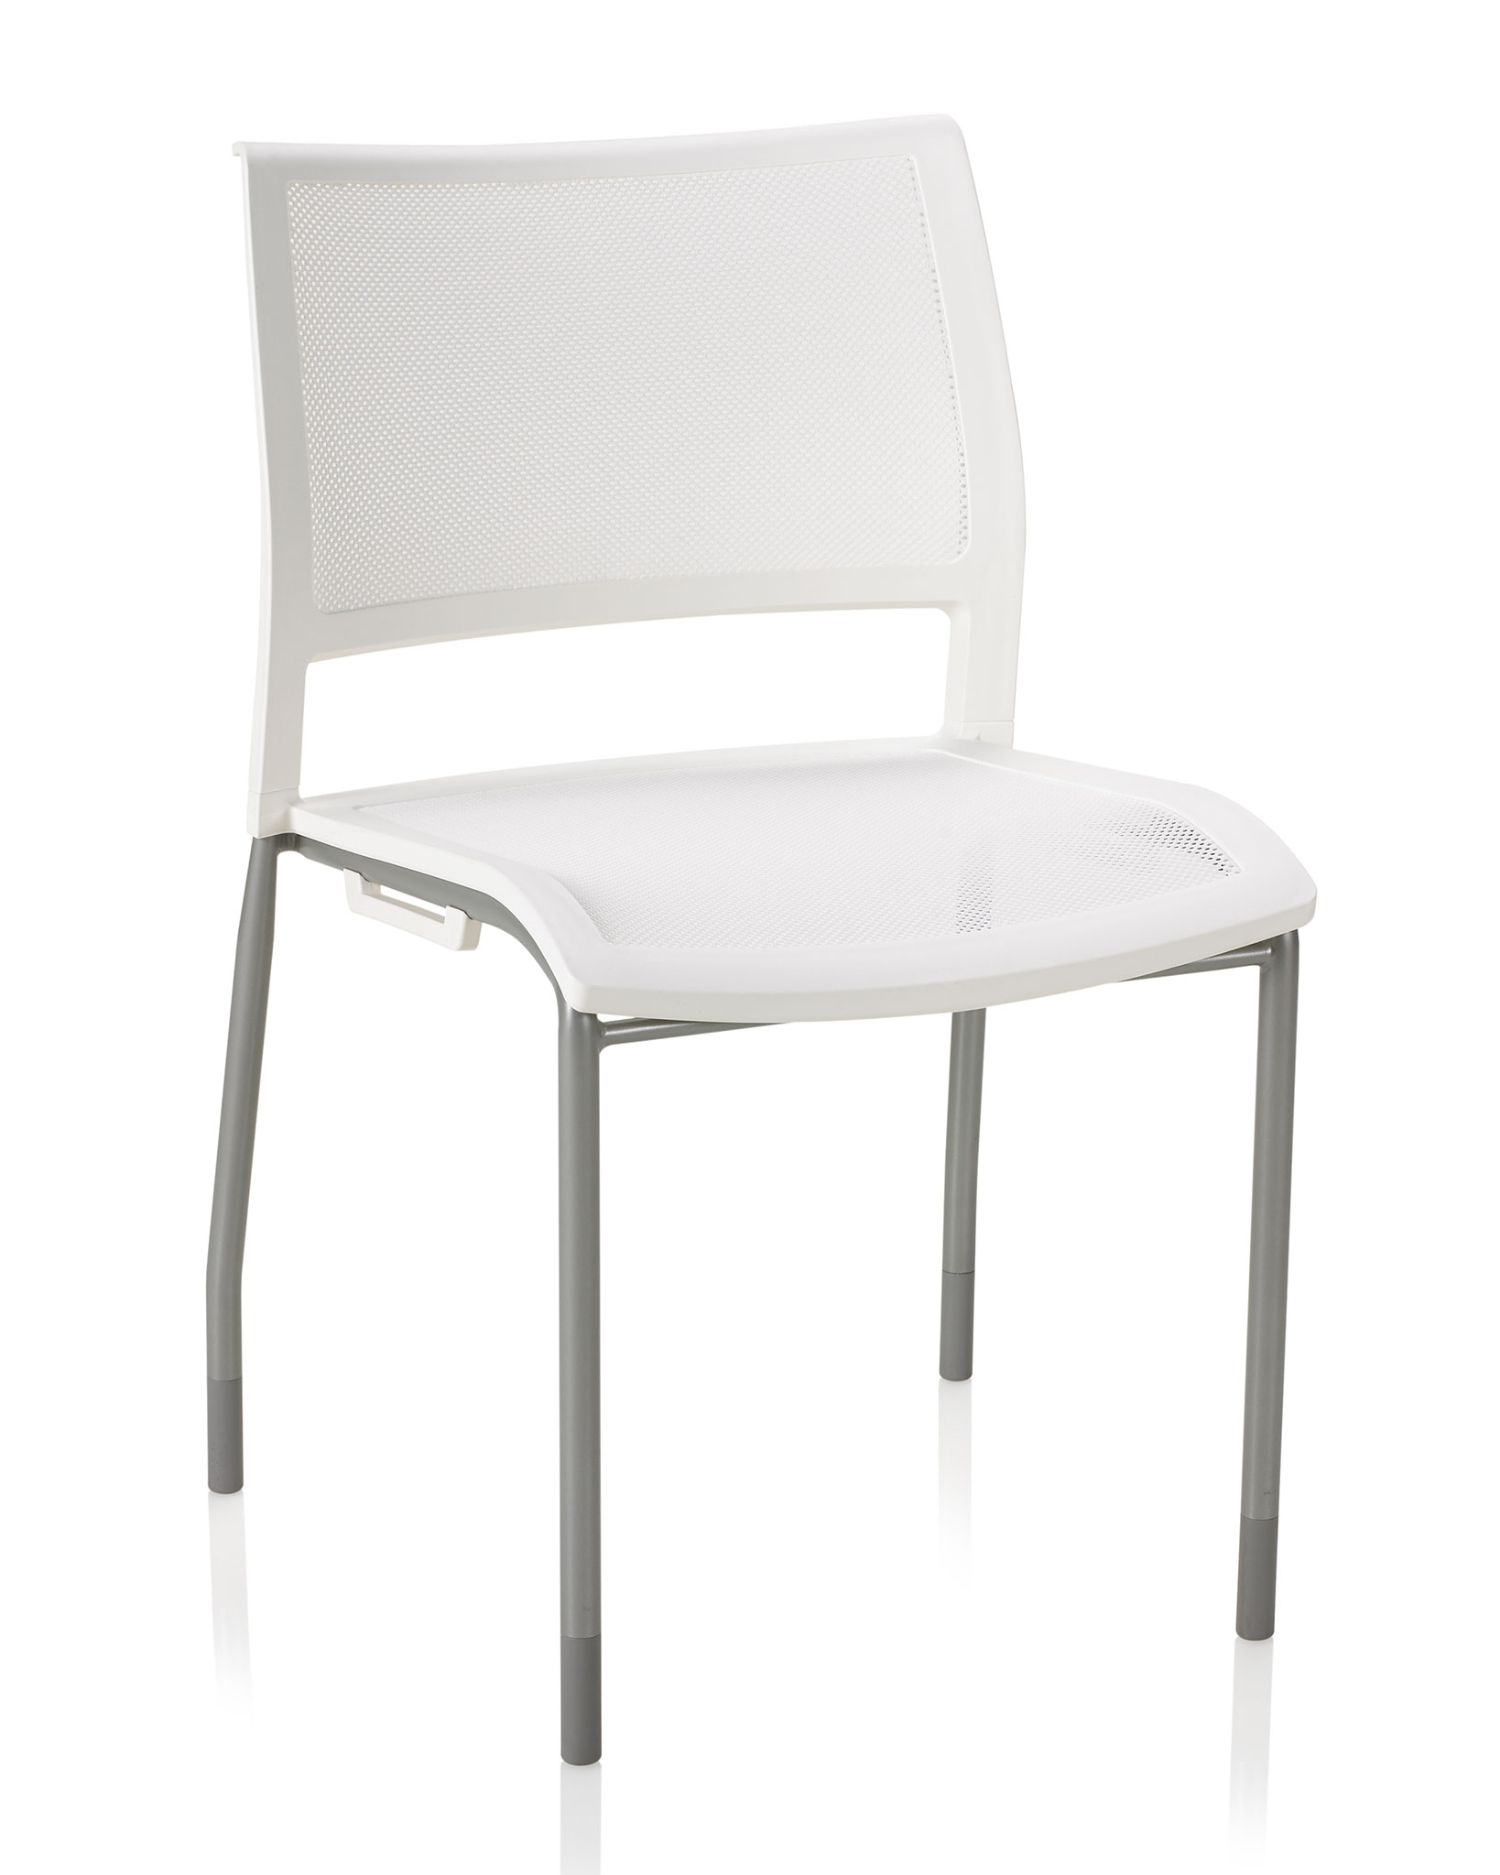 ki opt4 white stack chair with mesh seat and back